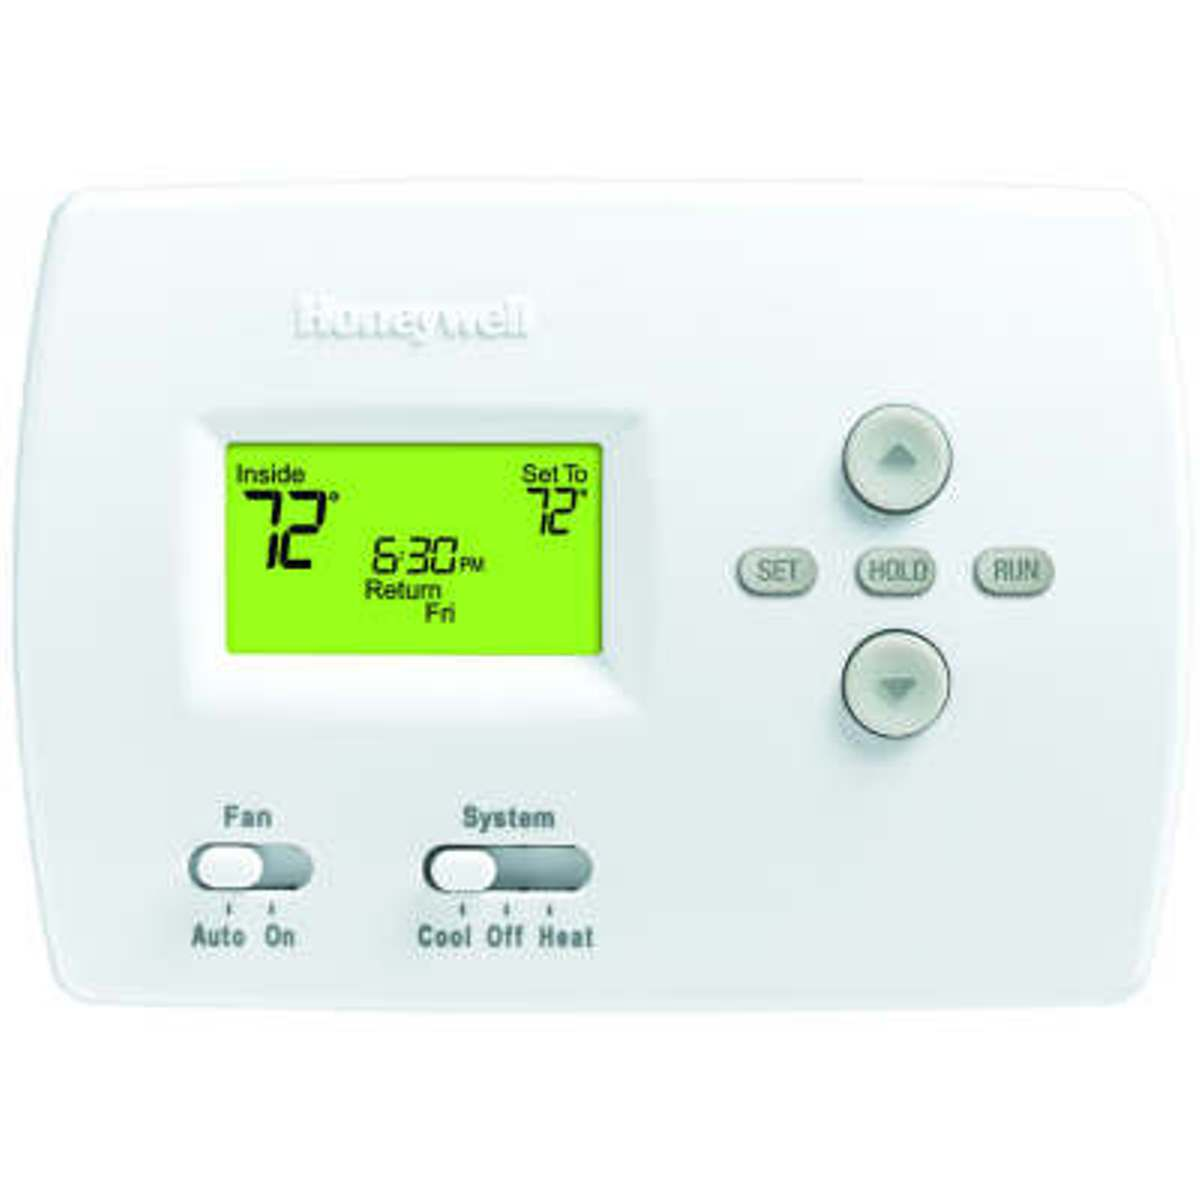 Heat Cool Honeywell Th4110d1007 Digital Programmable Thermostats Carrier Hvac